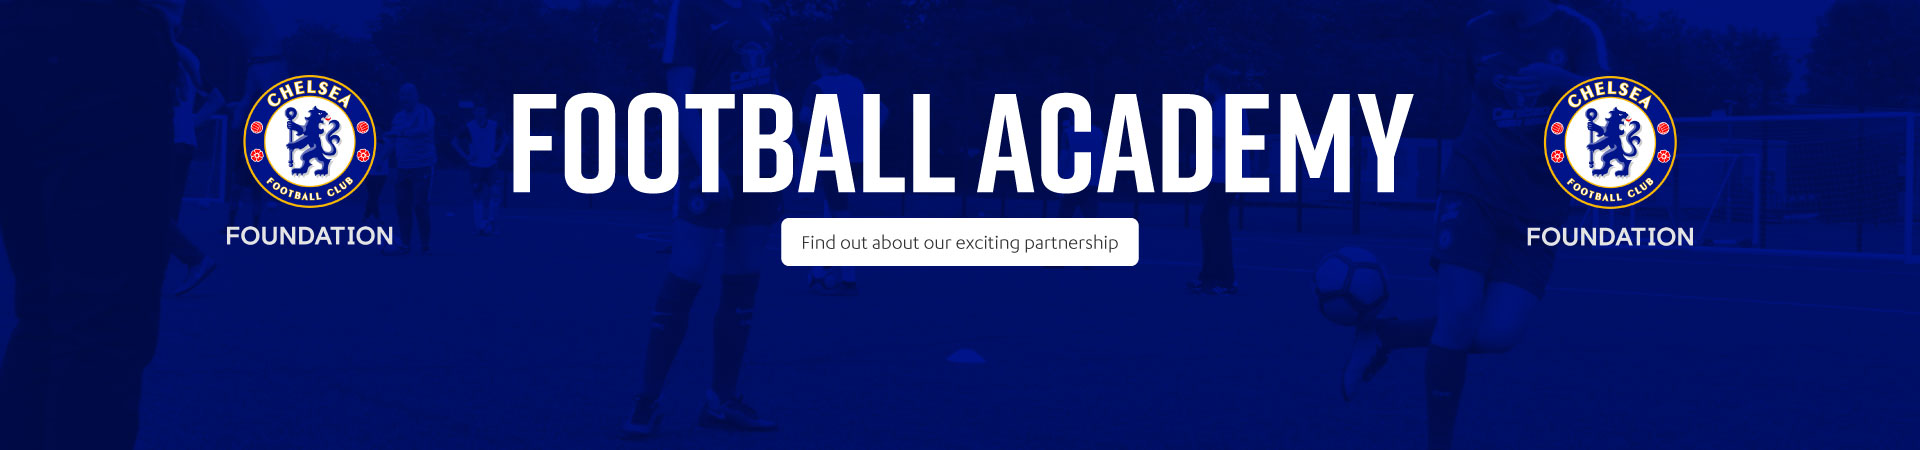 Homepage Slideshow - Football Academy